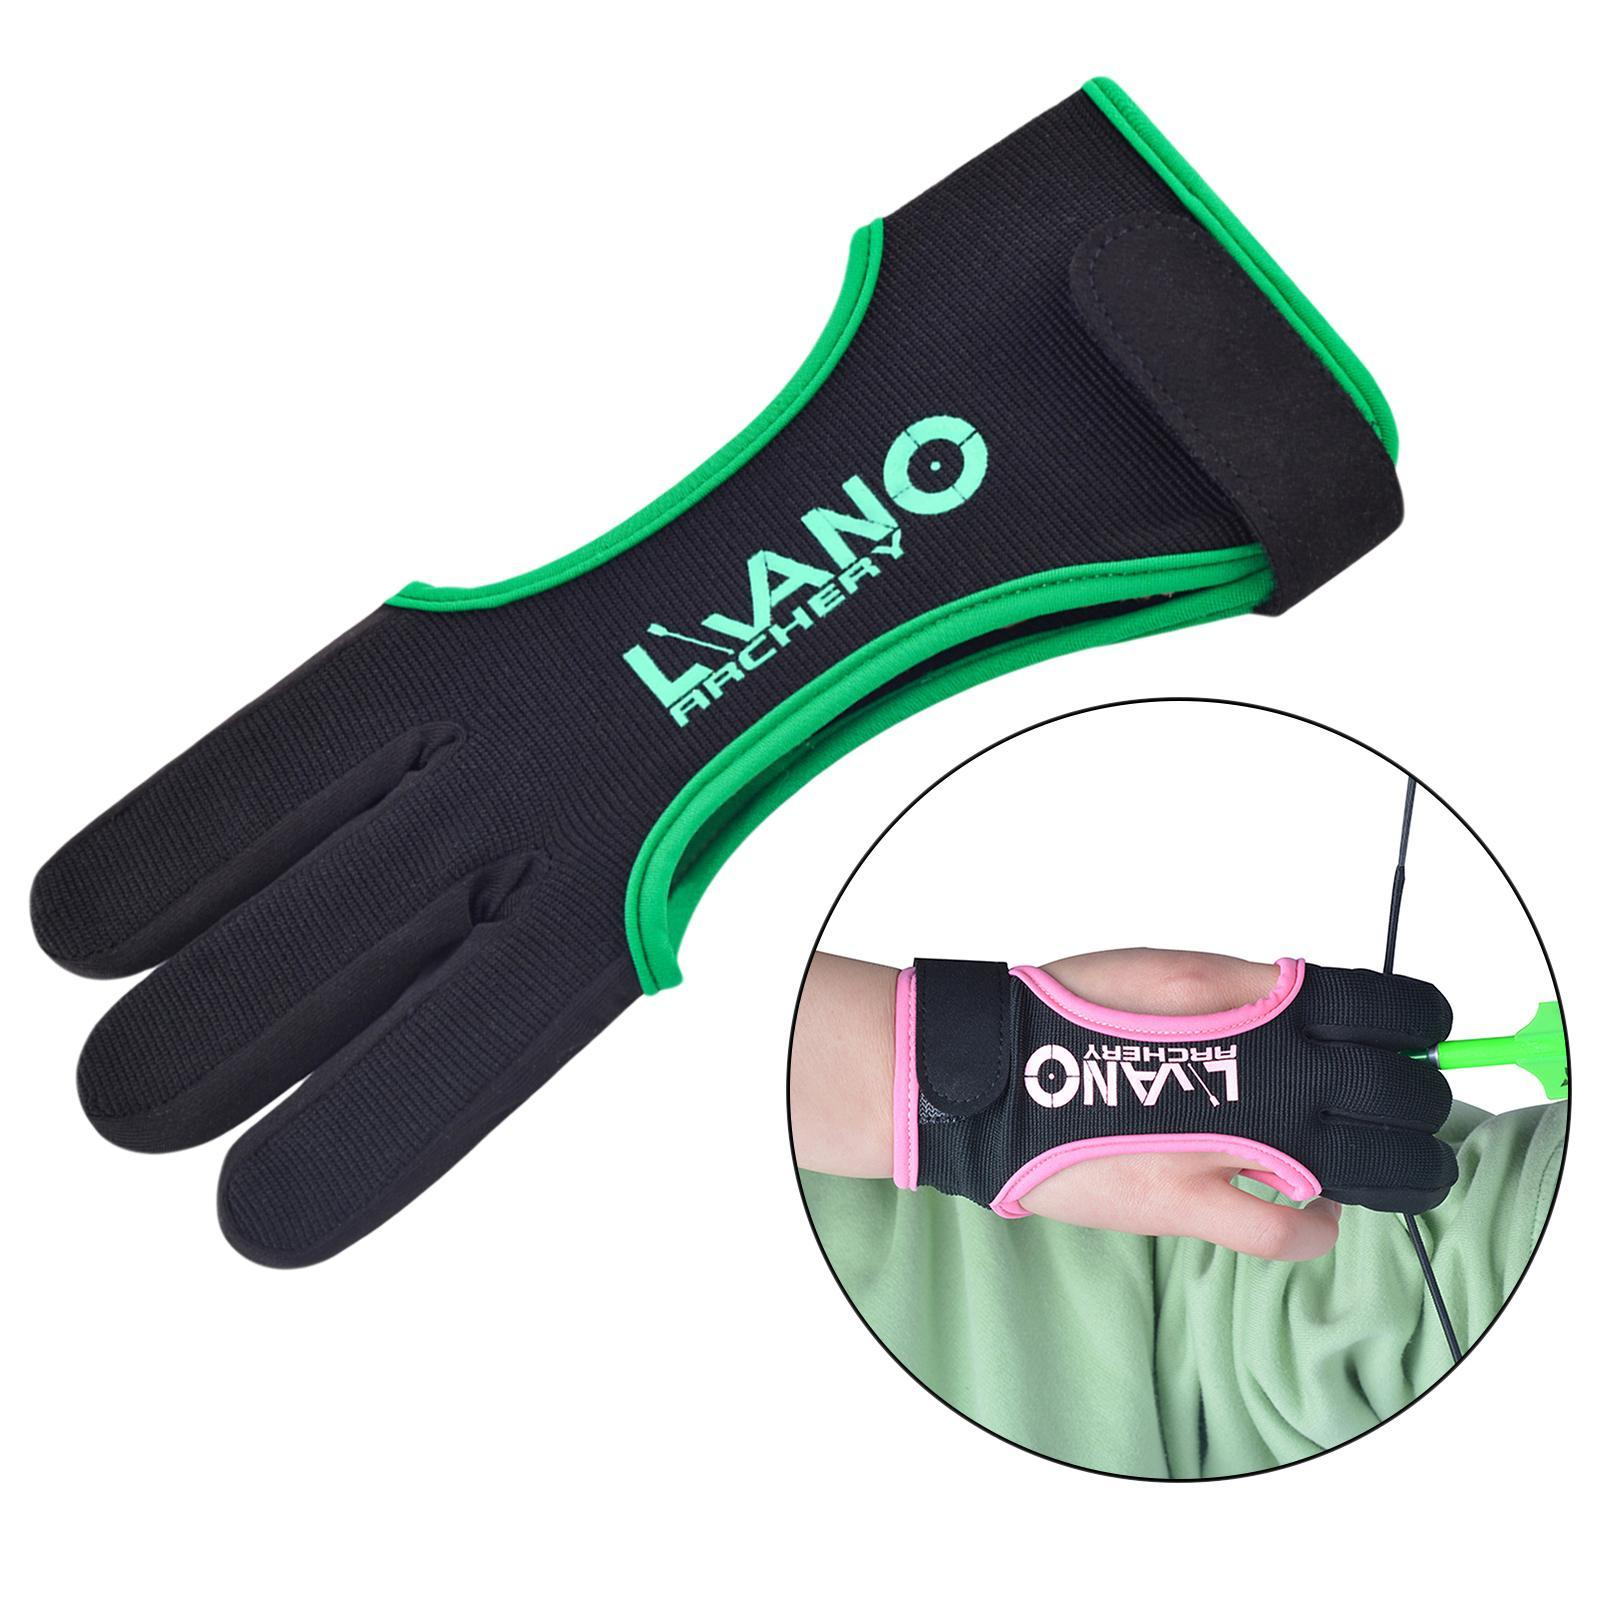 thumbnail 72 - Archery Glove for Recurve & Compound Bow 3 Finger Guard for Women Men Youth